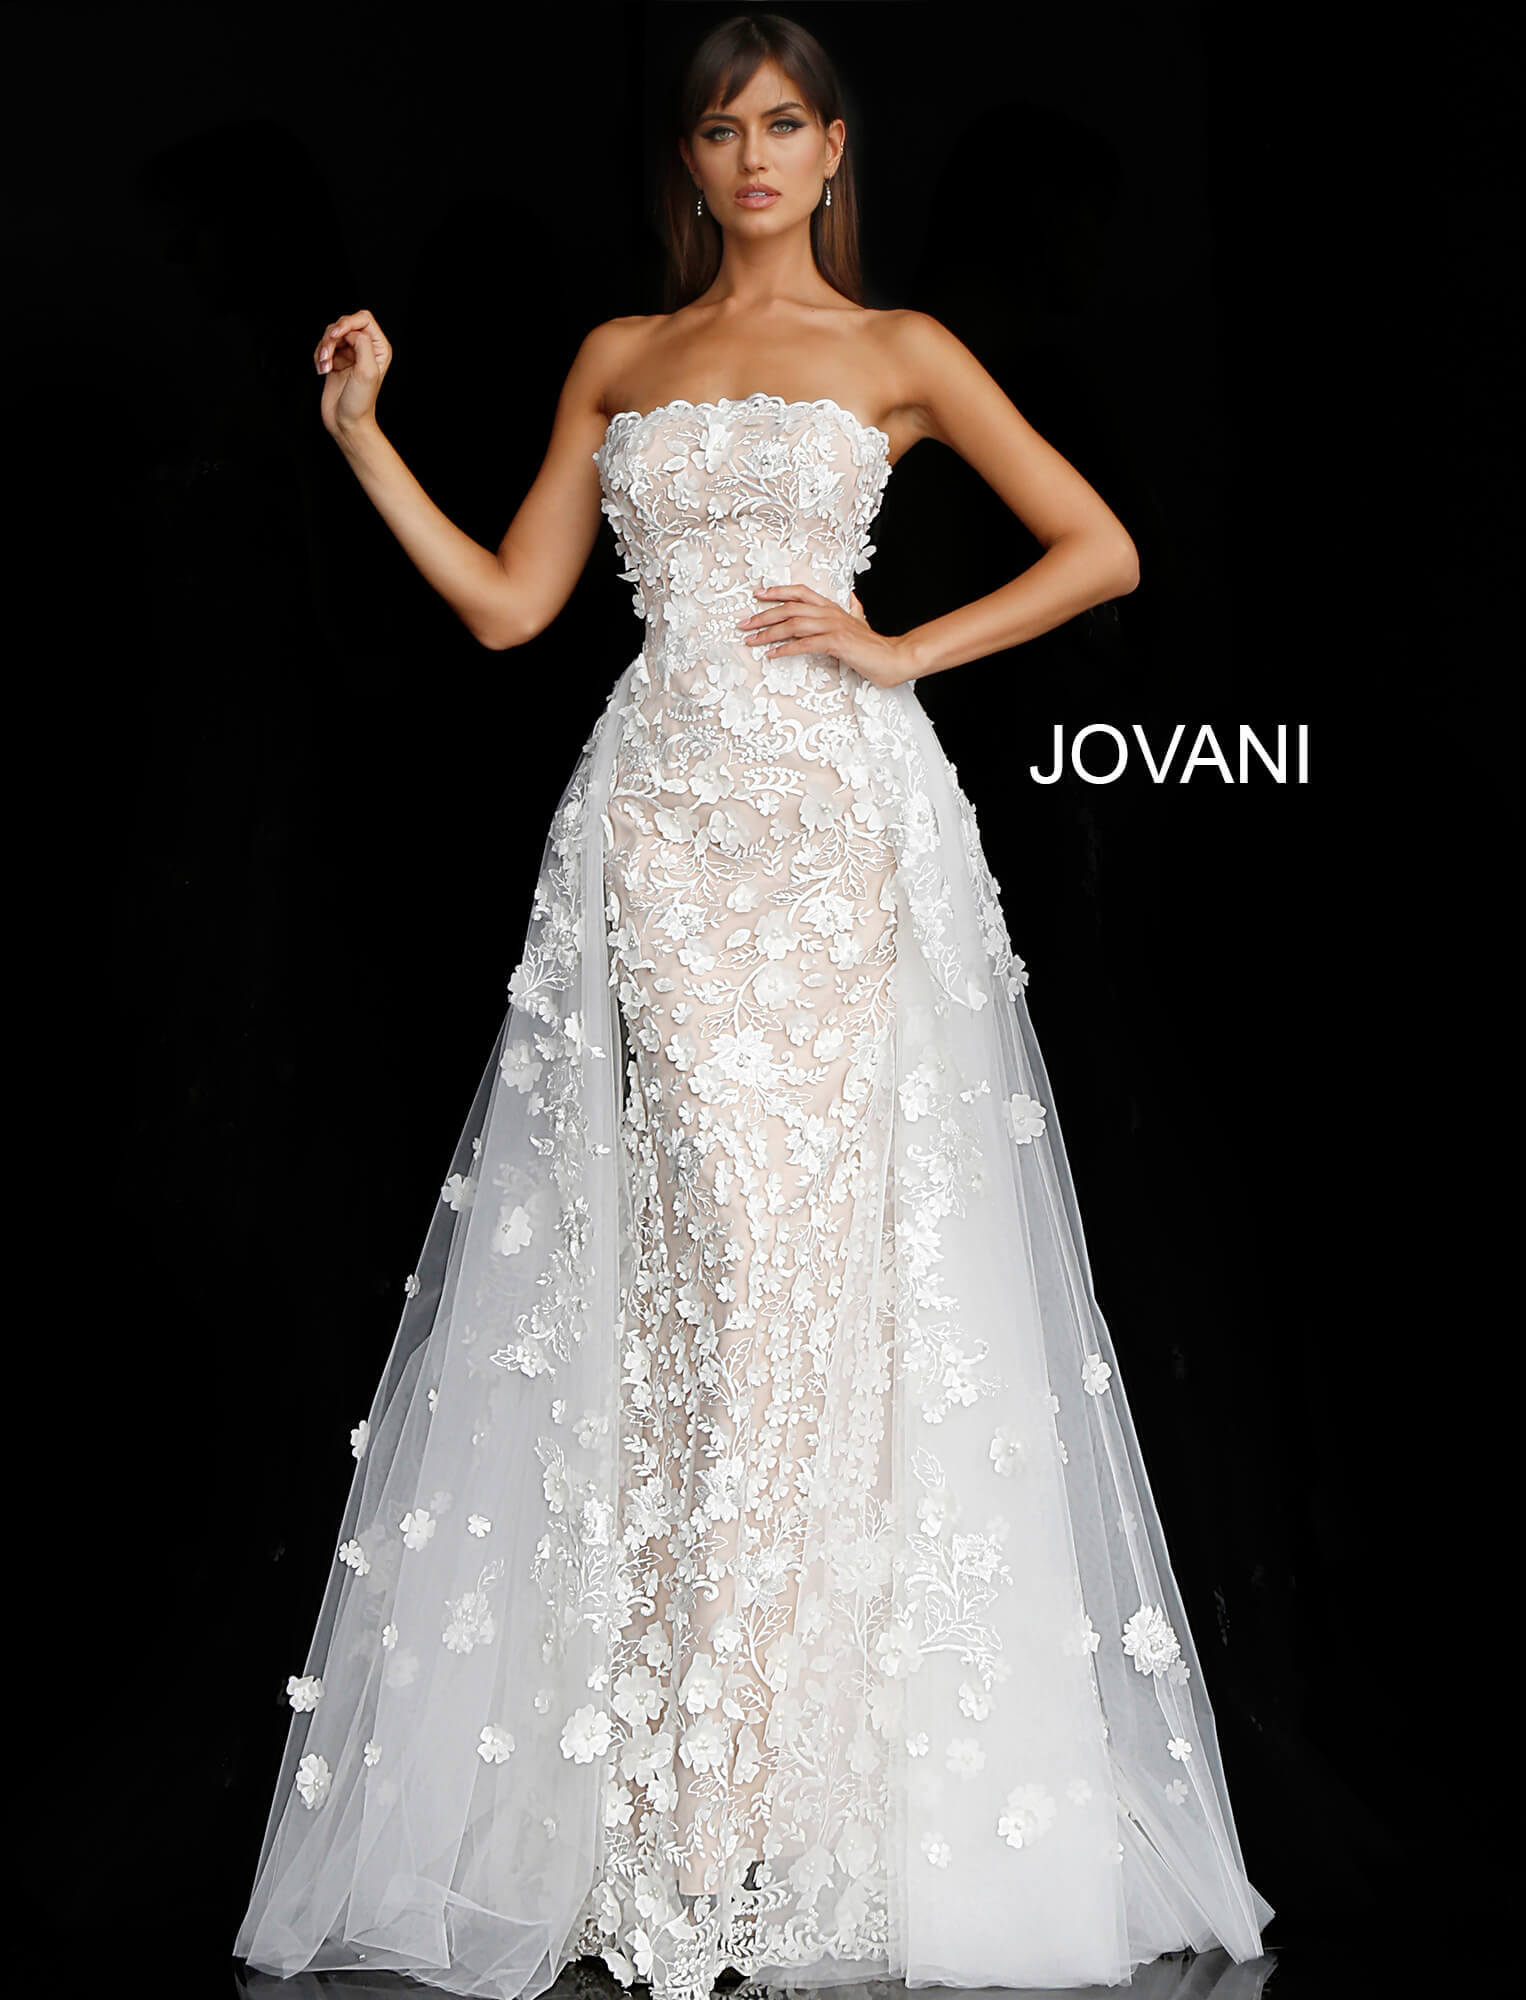 jovani Off White Nude Floral Appliques Strapless Wedding Gown 55616